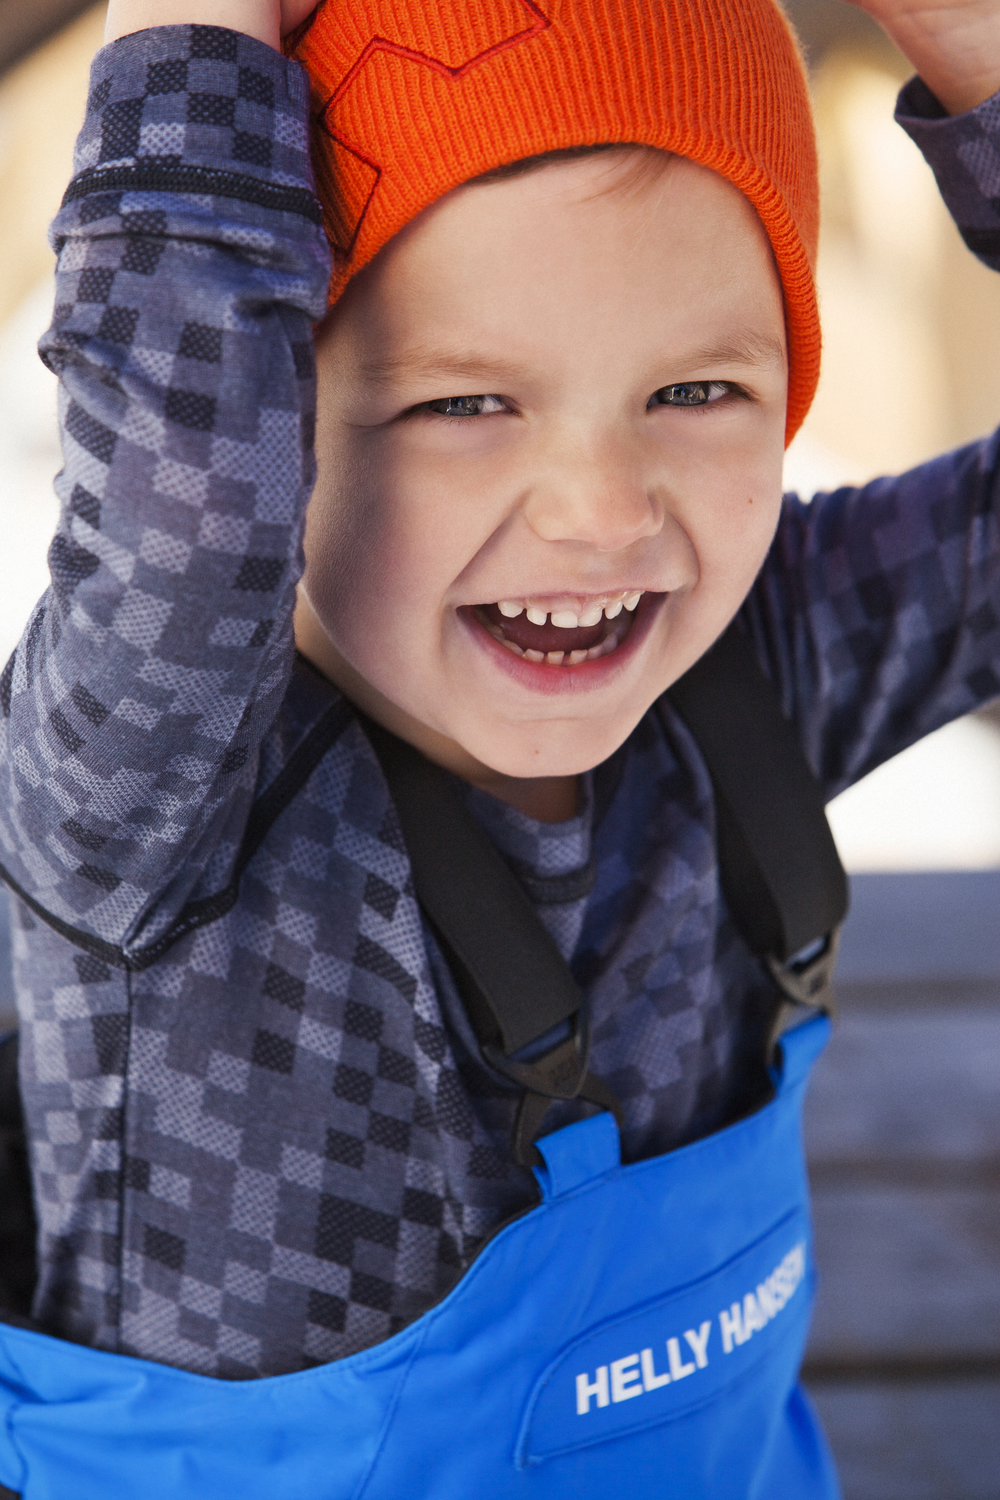 Helly Hansen Kids Photo Cato Aurtun 014.jpg